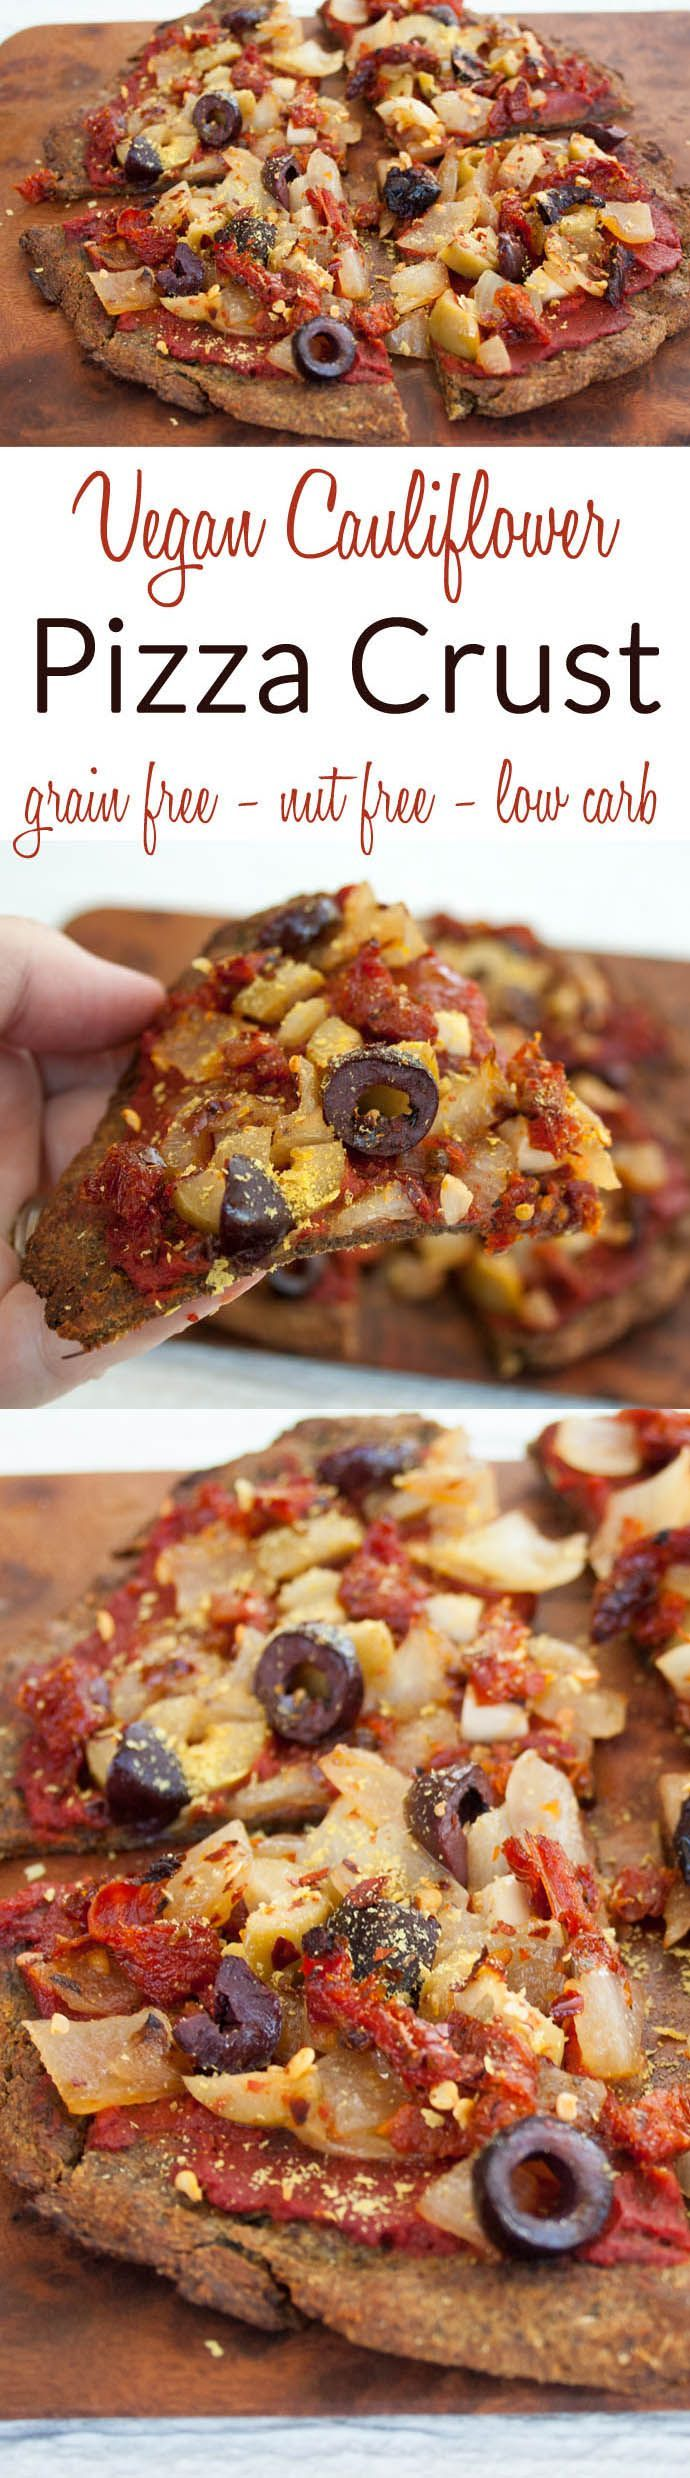 Cauliflower Pizza Crust (vegan, nut free, grain free, low carb) This gluten free recipe is perfect for low carb diets. It is easy to make and packed with flavor!